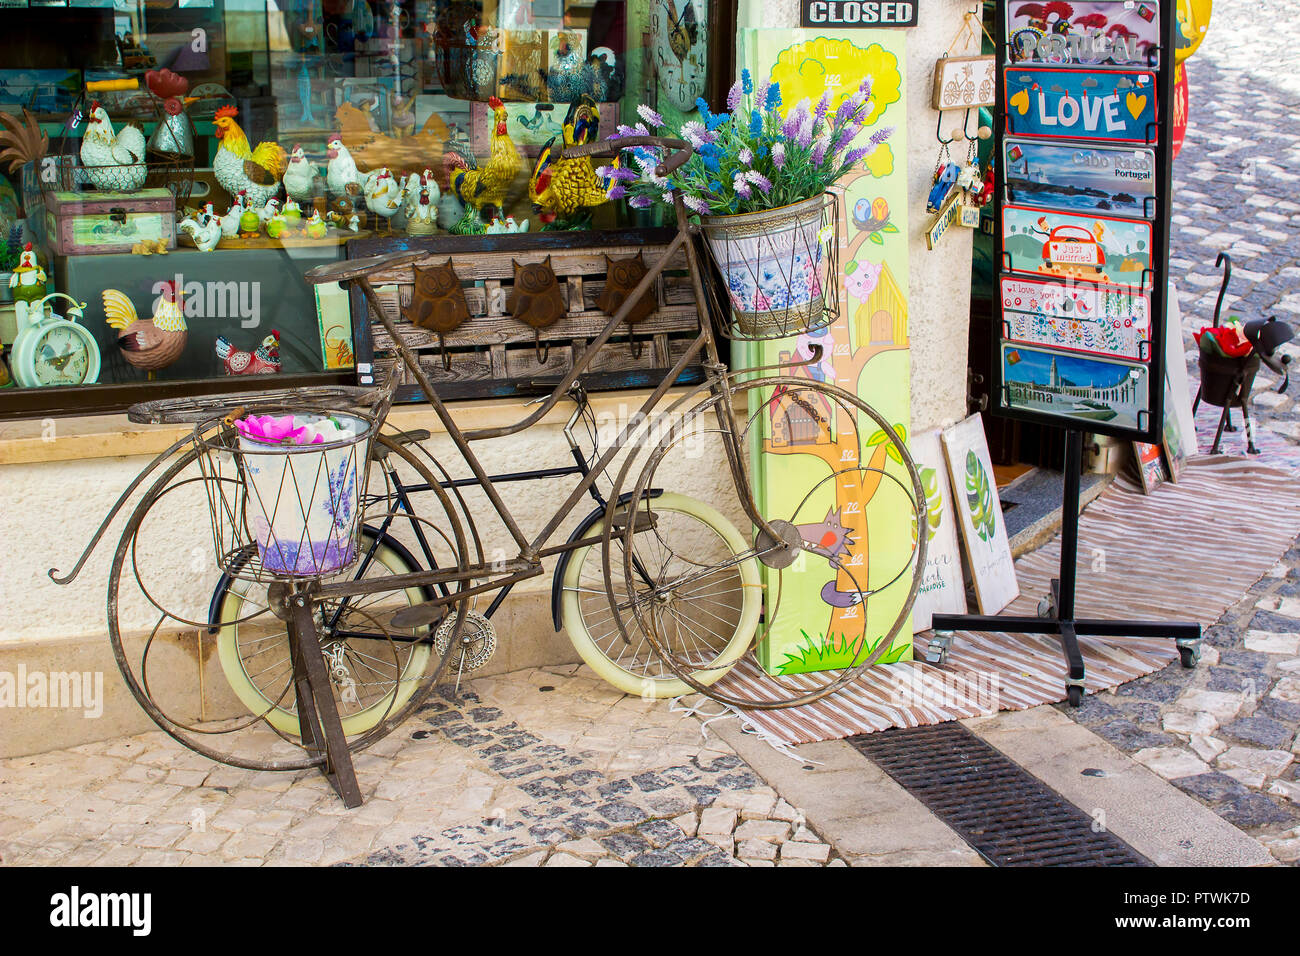 28 September 2018 Comical Ornamental bicycles for sale and on display outside a gift shop in Albuferia - Stock Image